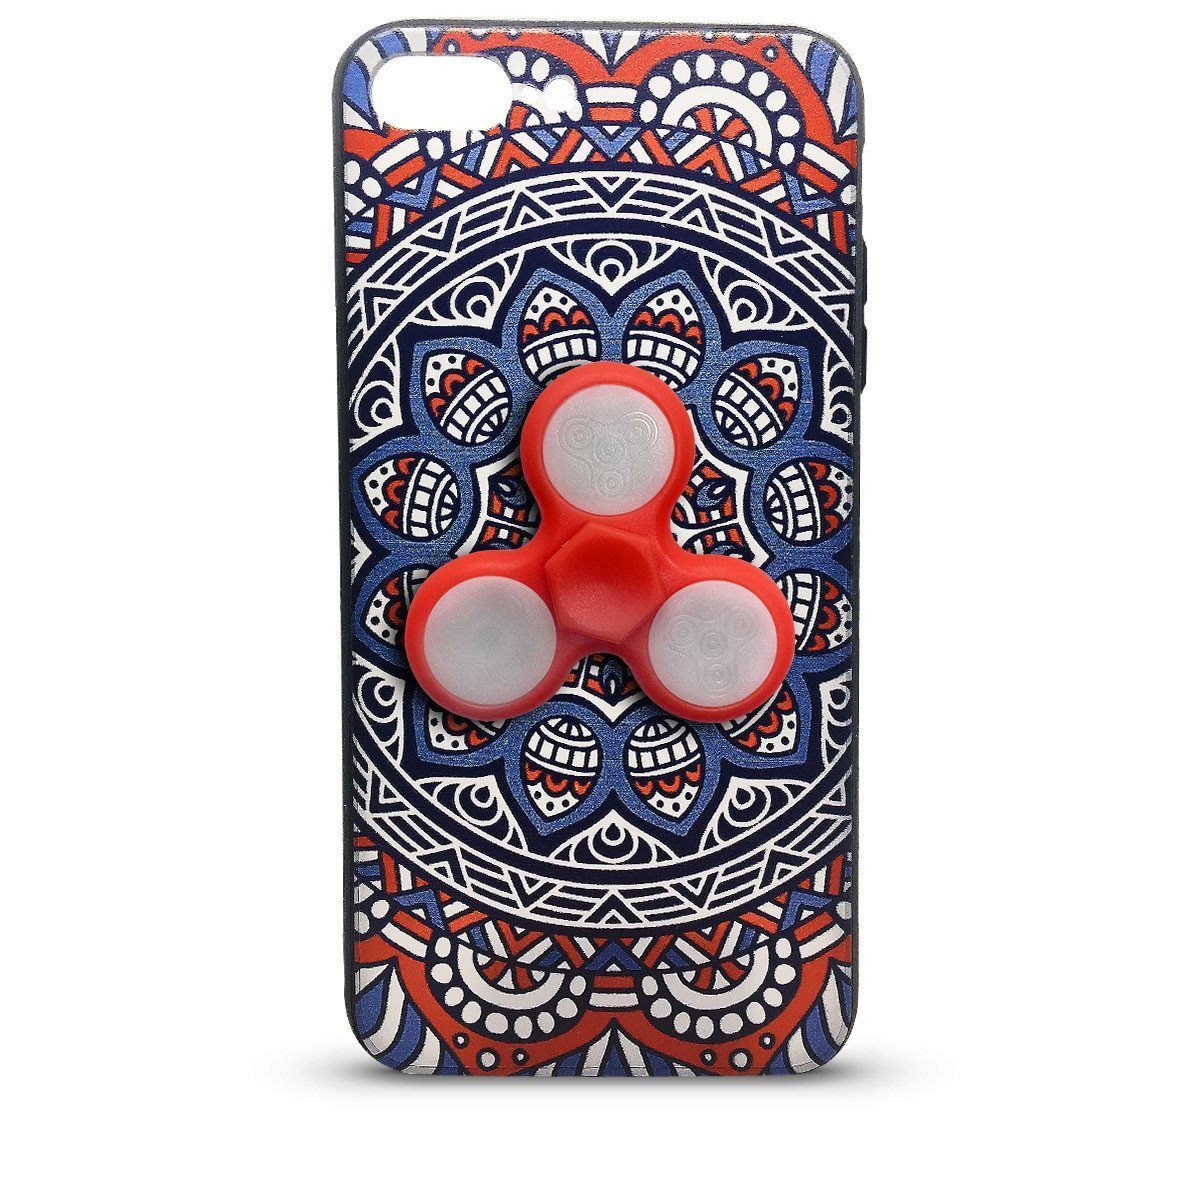 Fidget Case for iPhone 6 - Red